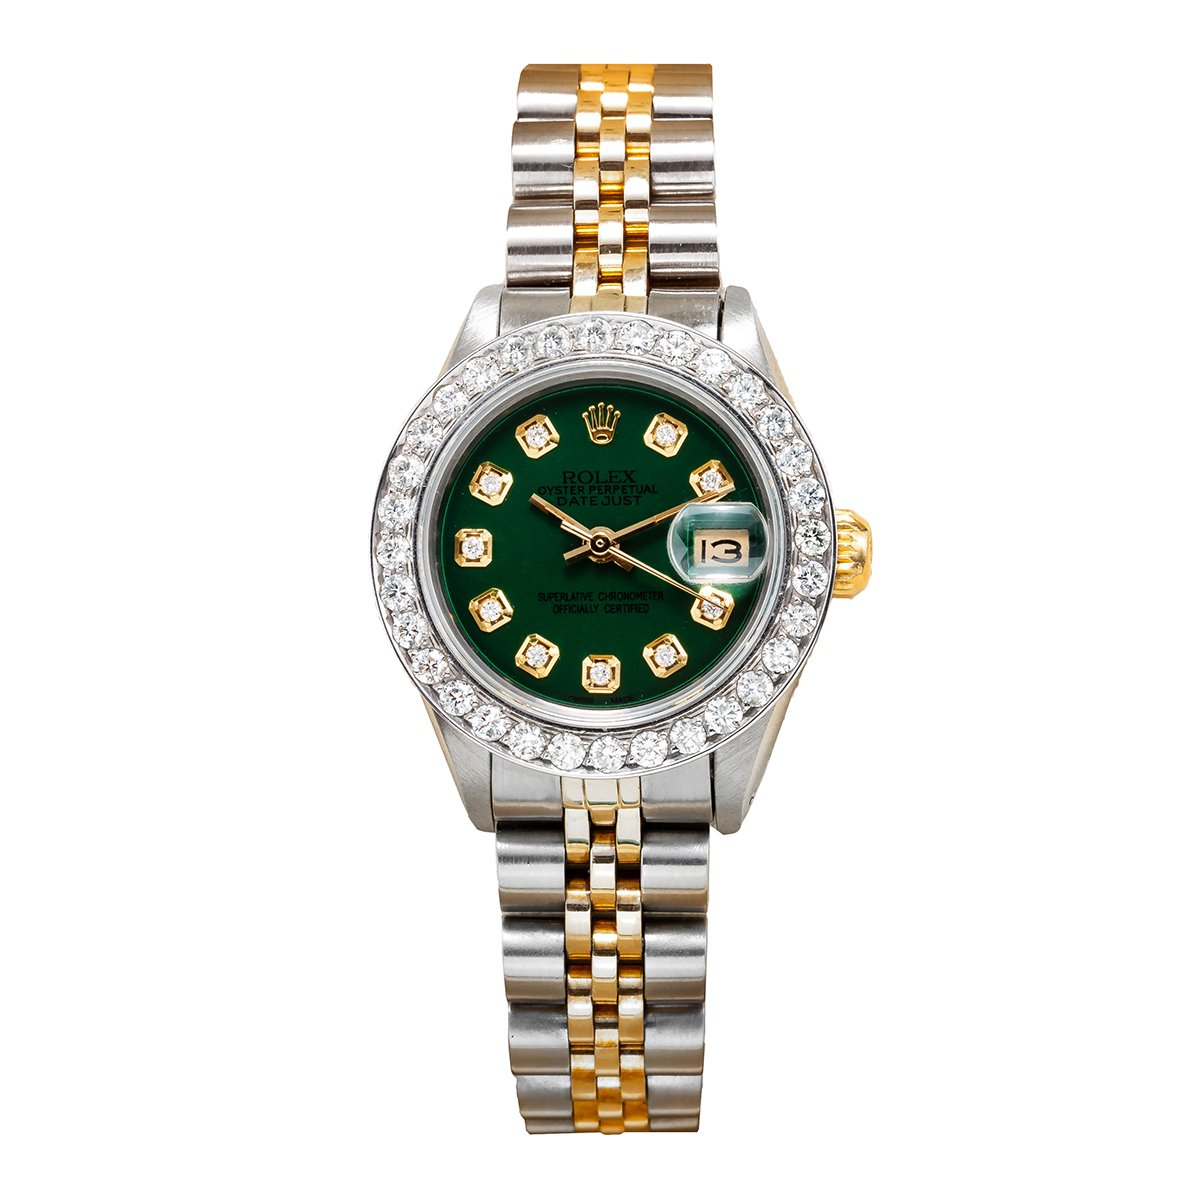 26mm 18k Gold Rolex Datejust Ladies Diamond Bezel Watch 179173 Green Dial Main Image